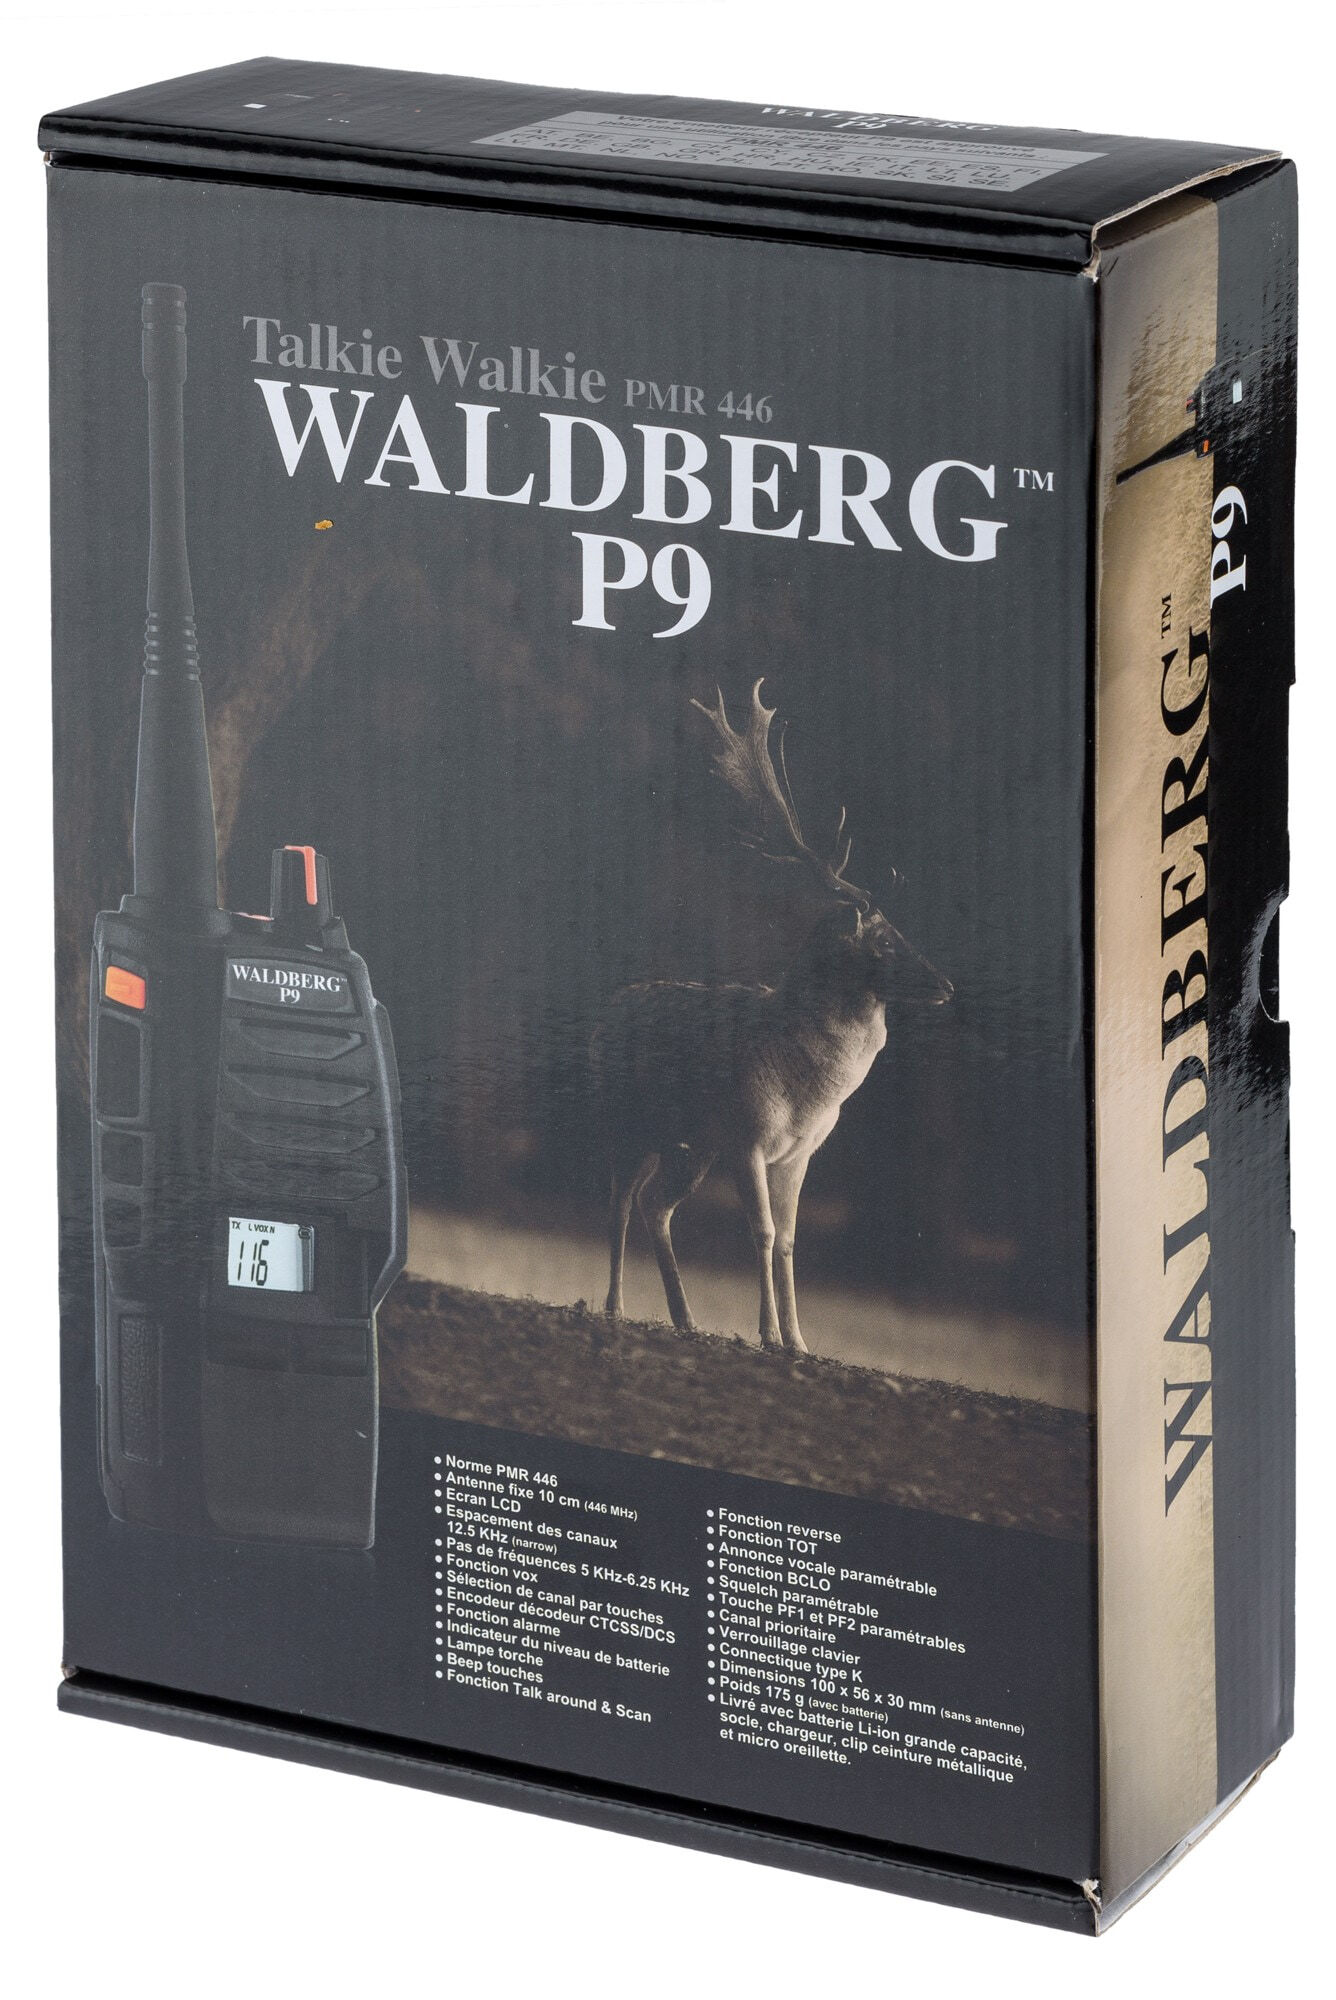 A69235-11 Talkie-Walkie Waldberg P9 PRO V2 - A69235